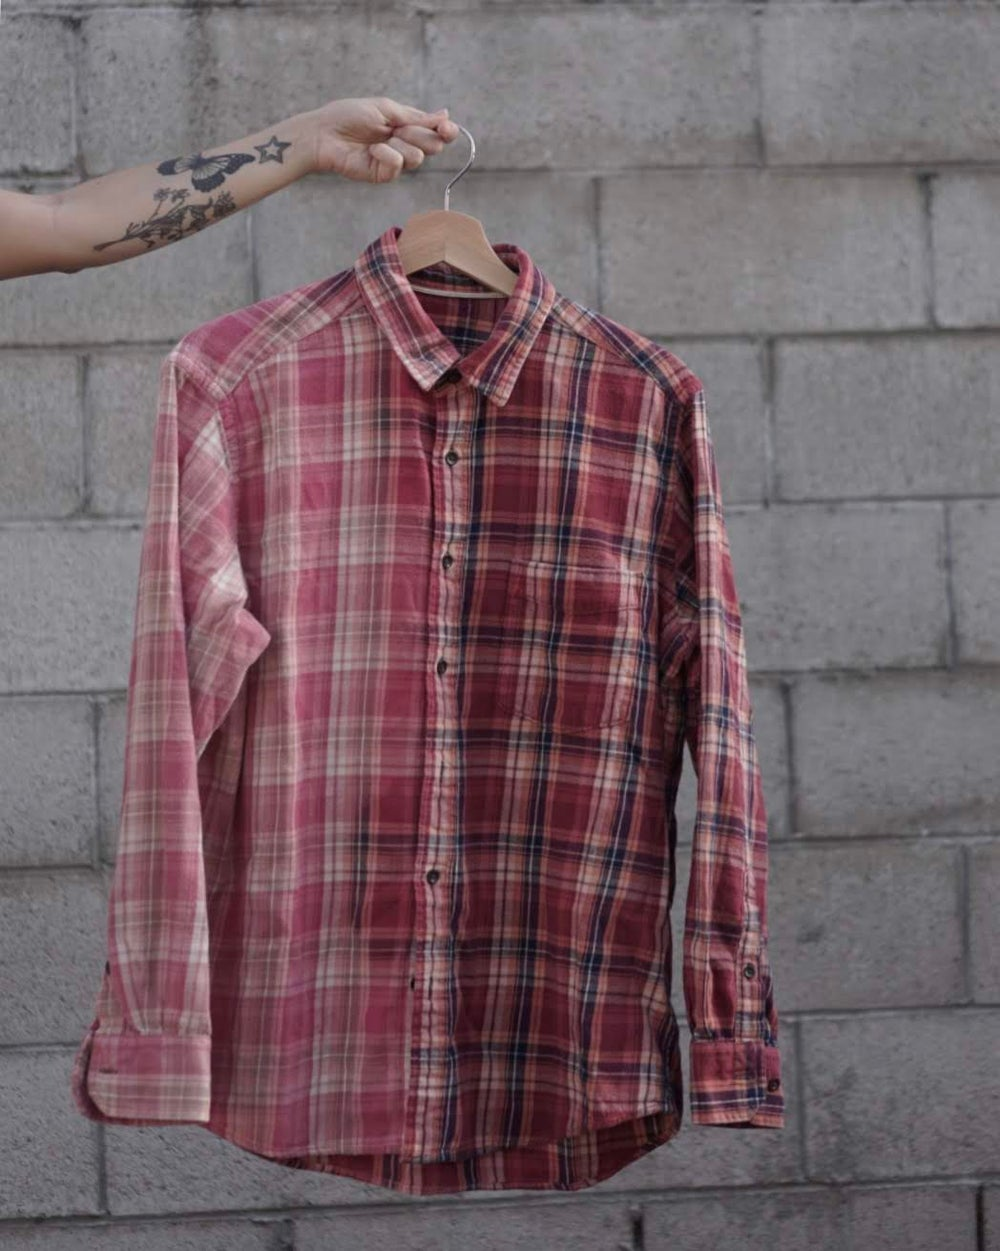 Image of classic faded pink/red flannel.